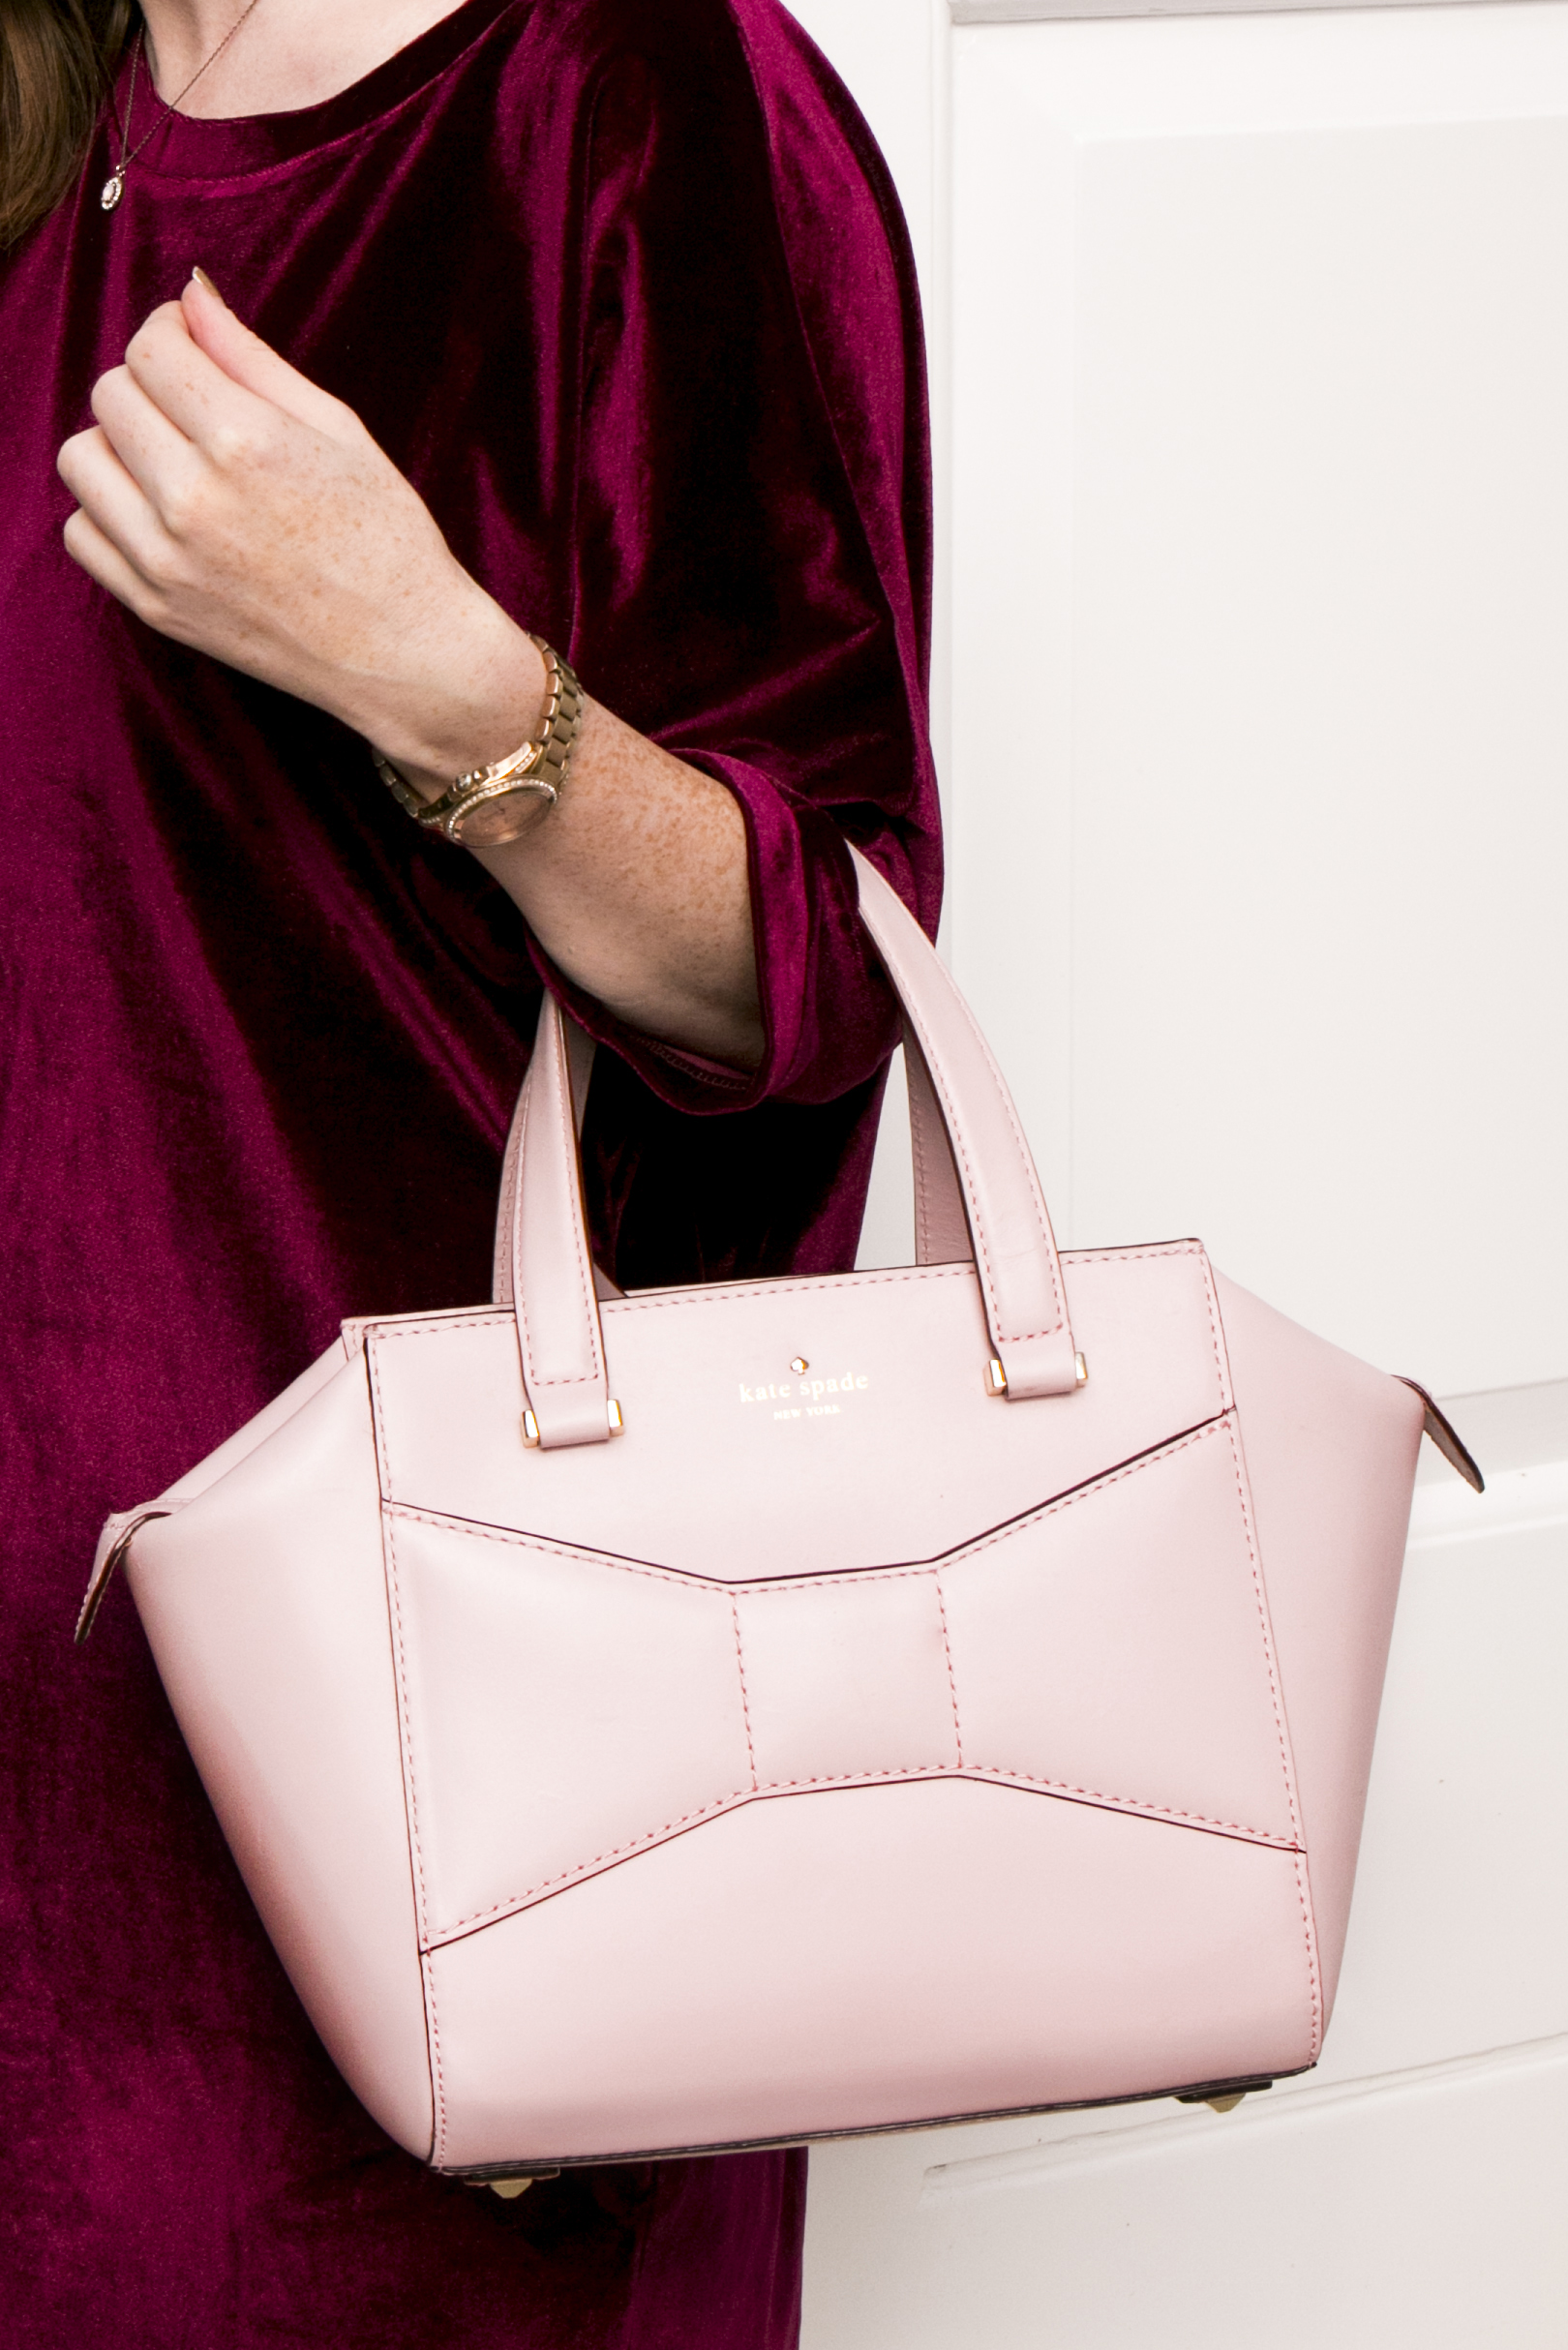 Kate Spade bag pink BecBoop blog